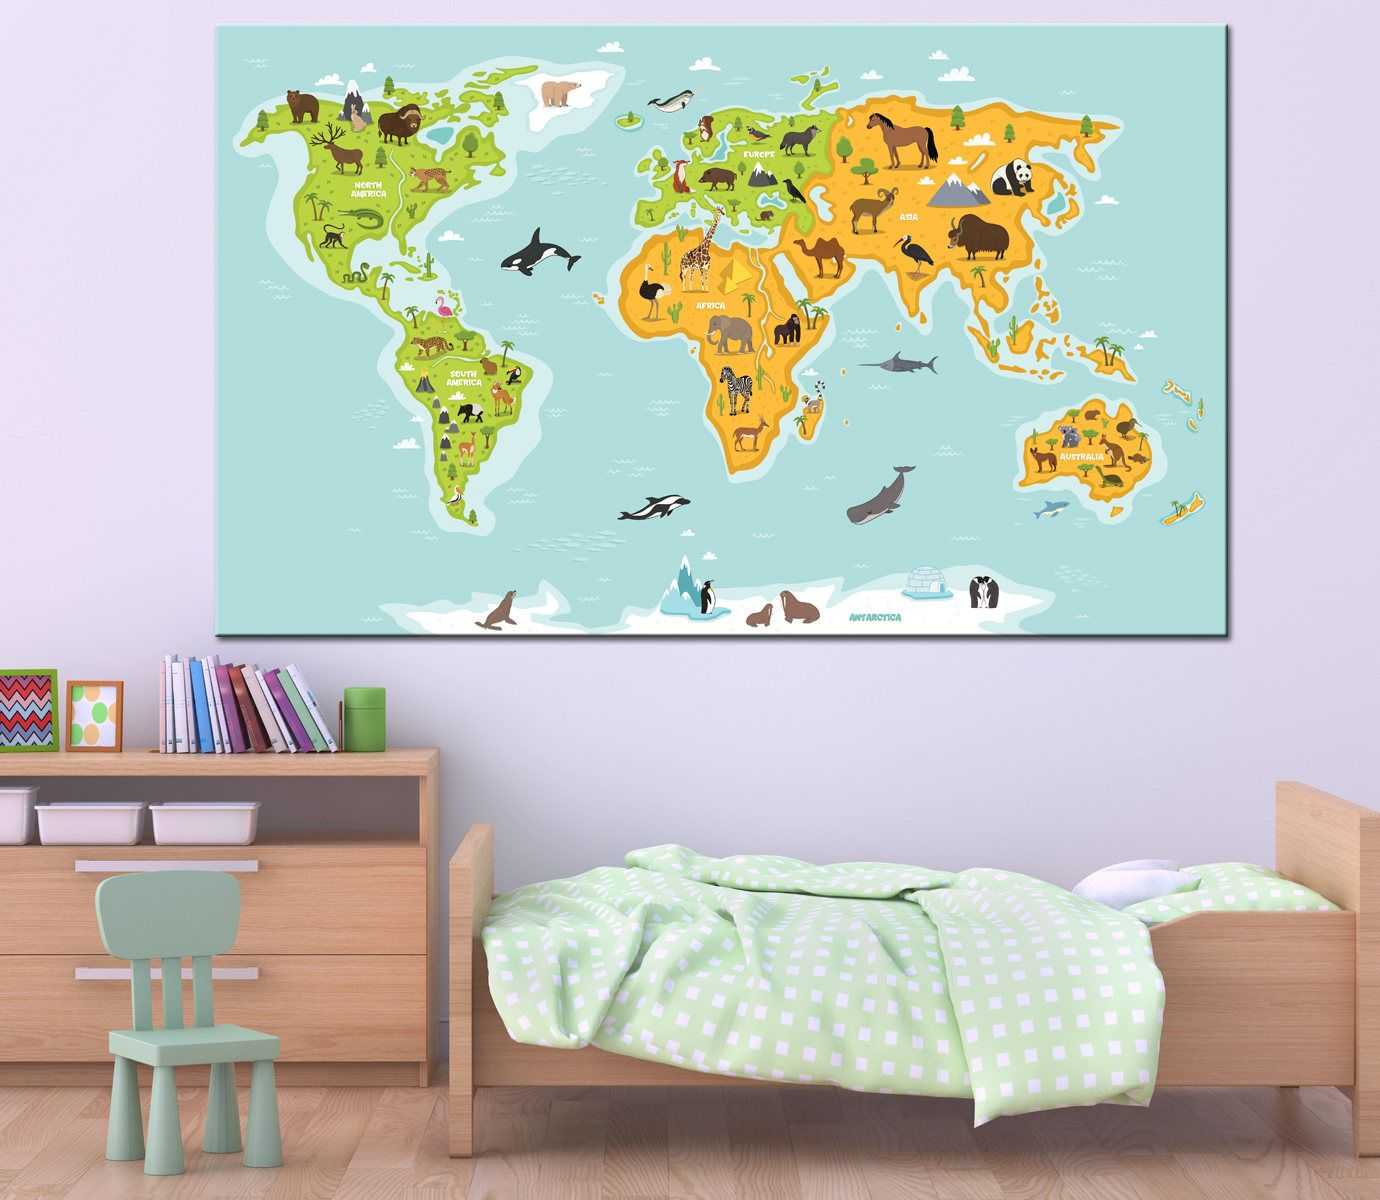 Animal map for kids world map canvas print for children cute animal map for kids world map canvas print for children cute illustrated preschool gumiabroncs Image collections